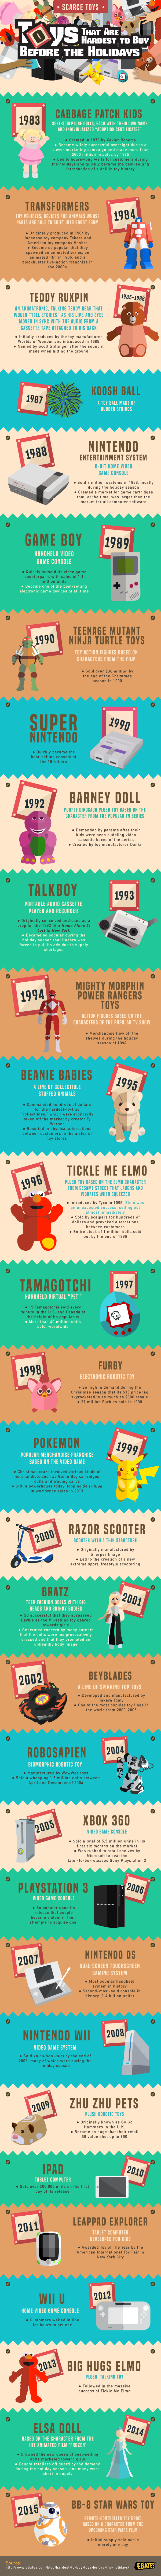 Toys That are Hardest to Buy Before the Holidays #infographic